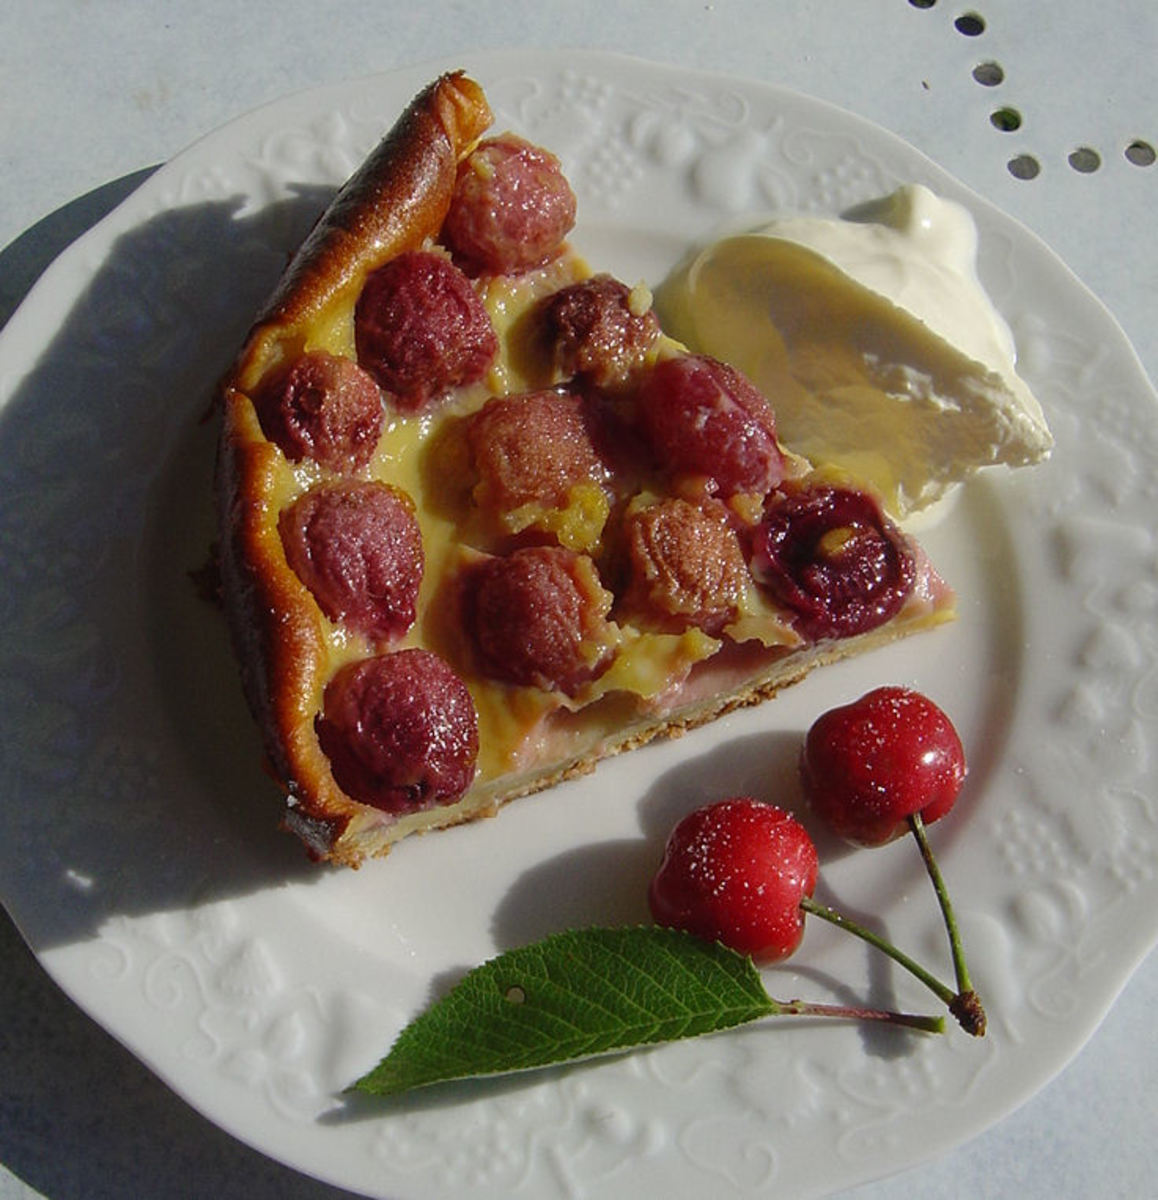 Cherry Clafouti is a Traditional French Dessert Recipe From Limousin